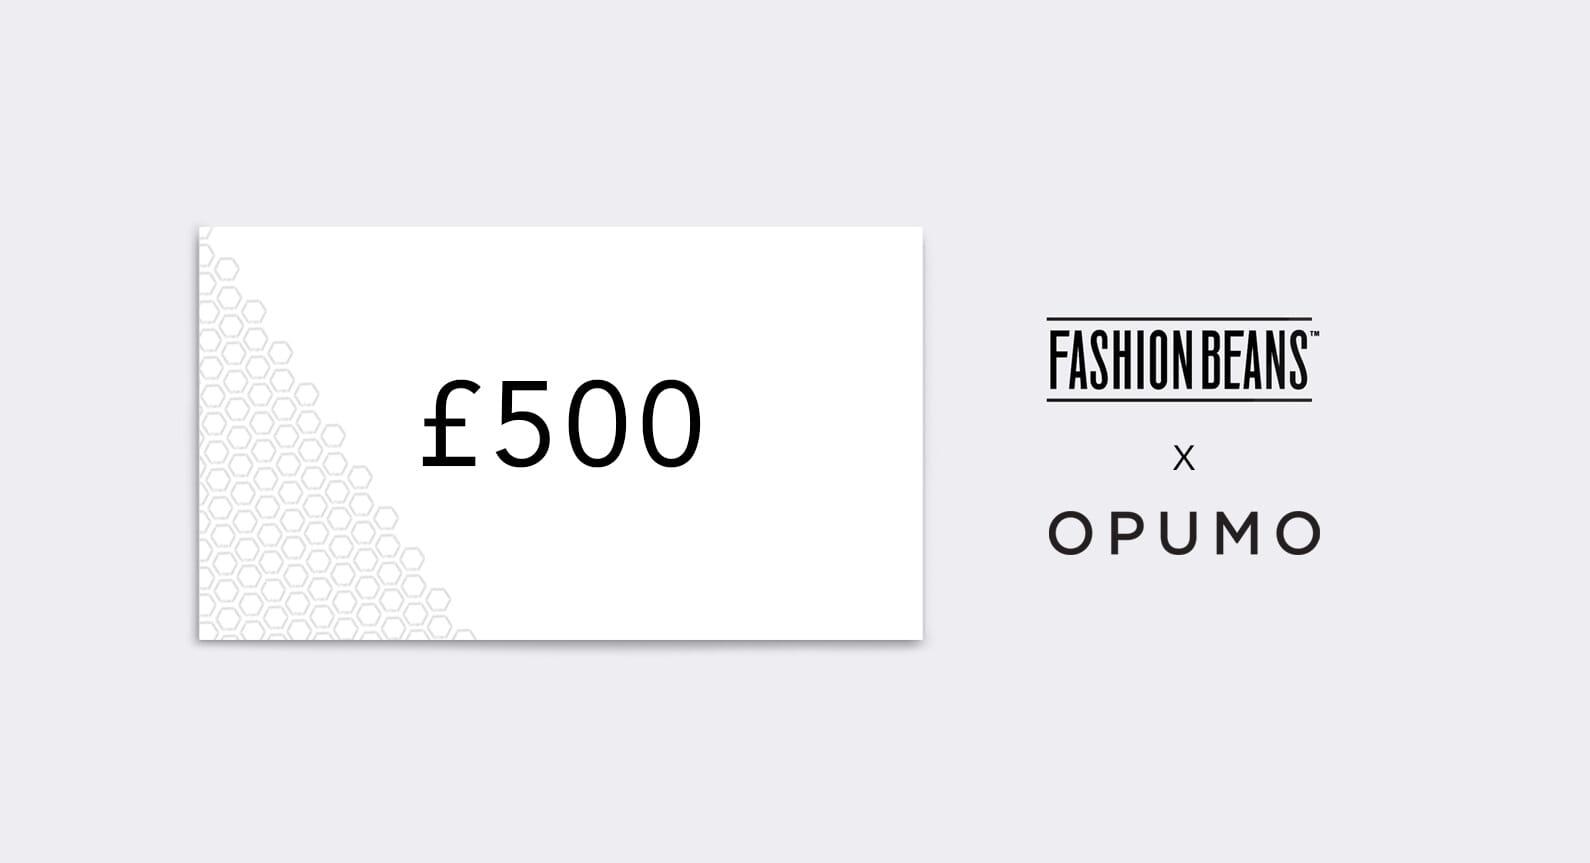 Win £500 To Spend At OPUMO Courtesy Of FashionBeans